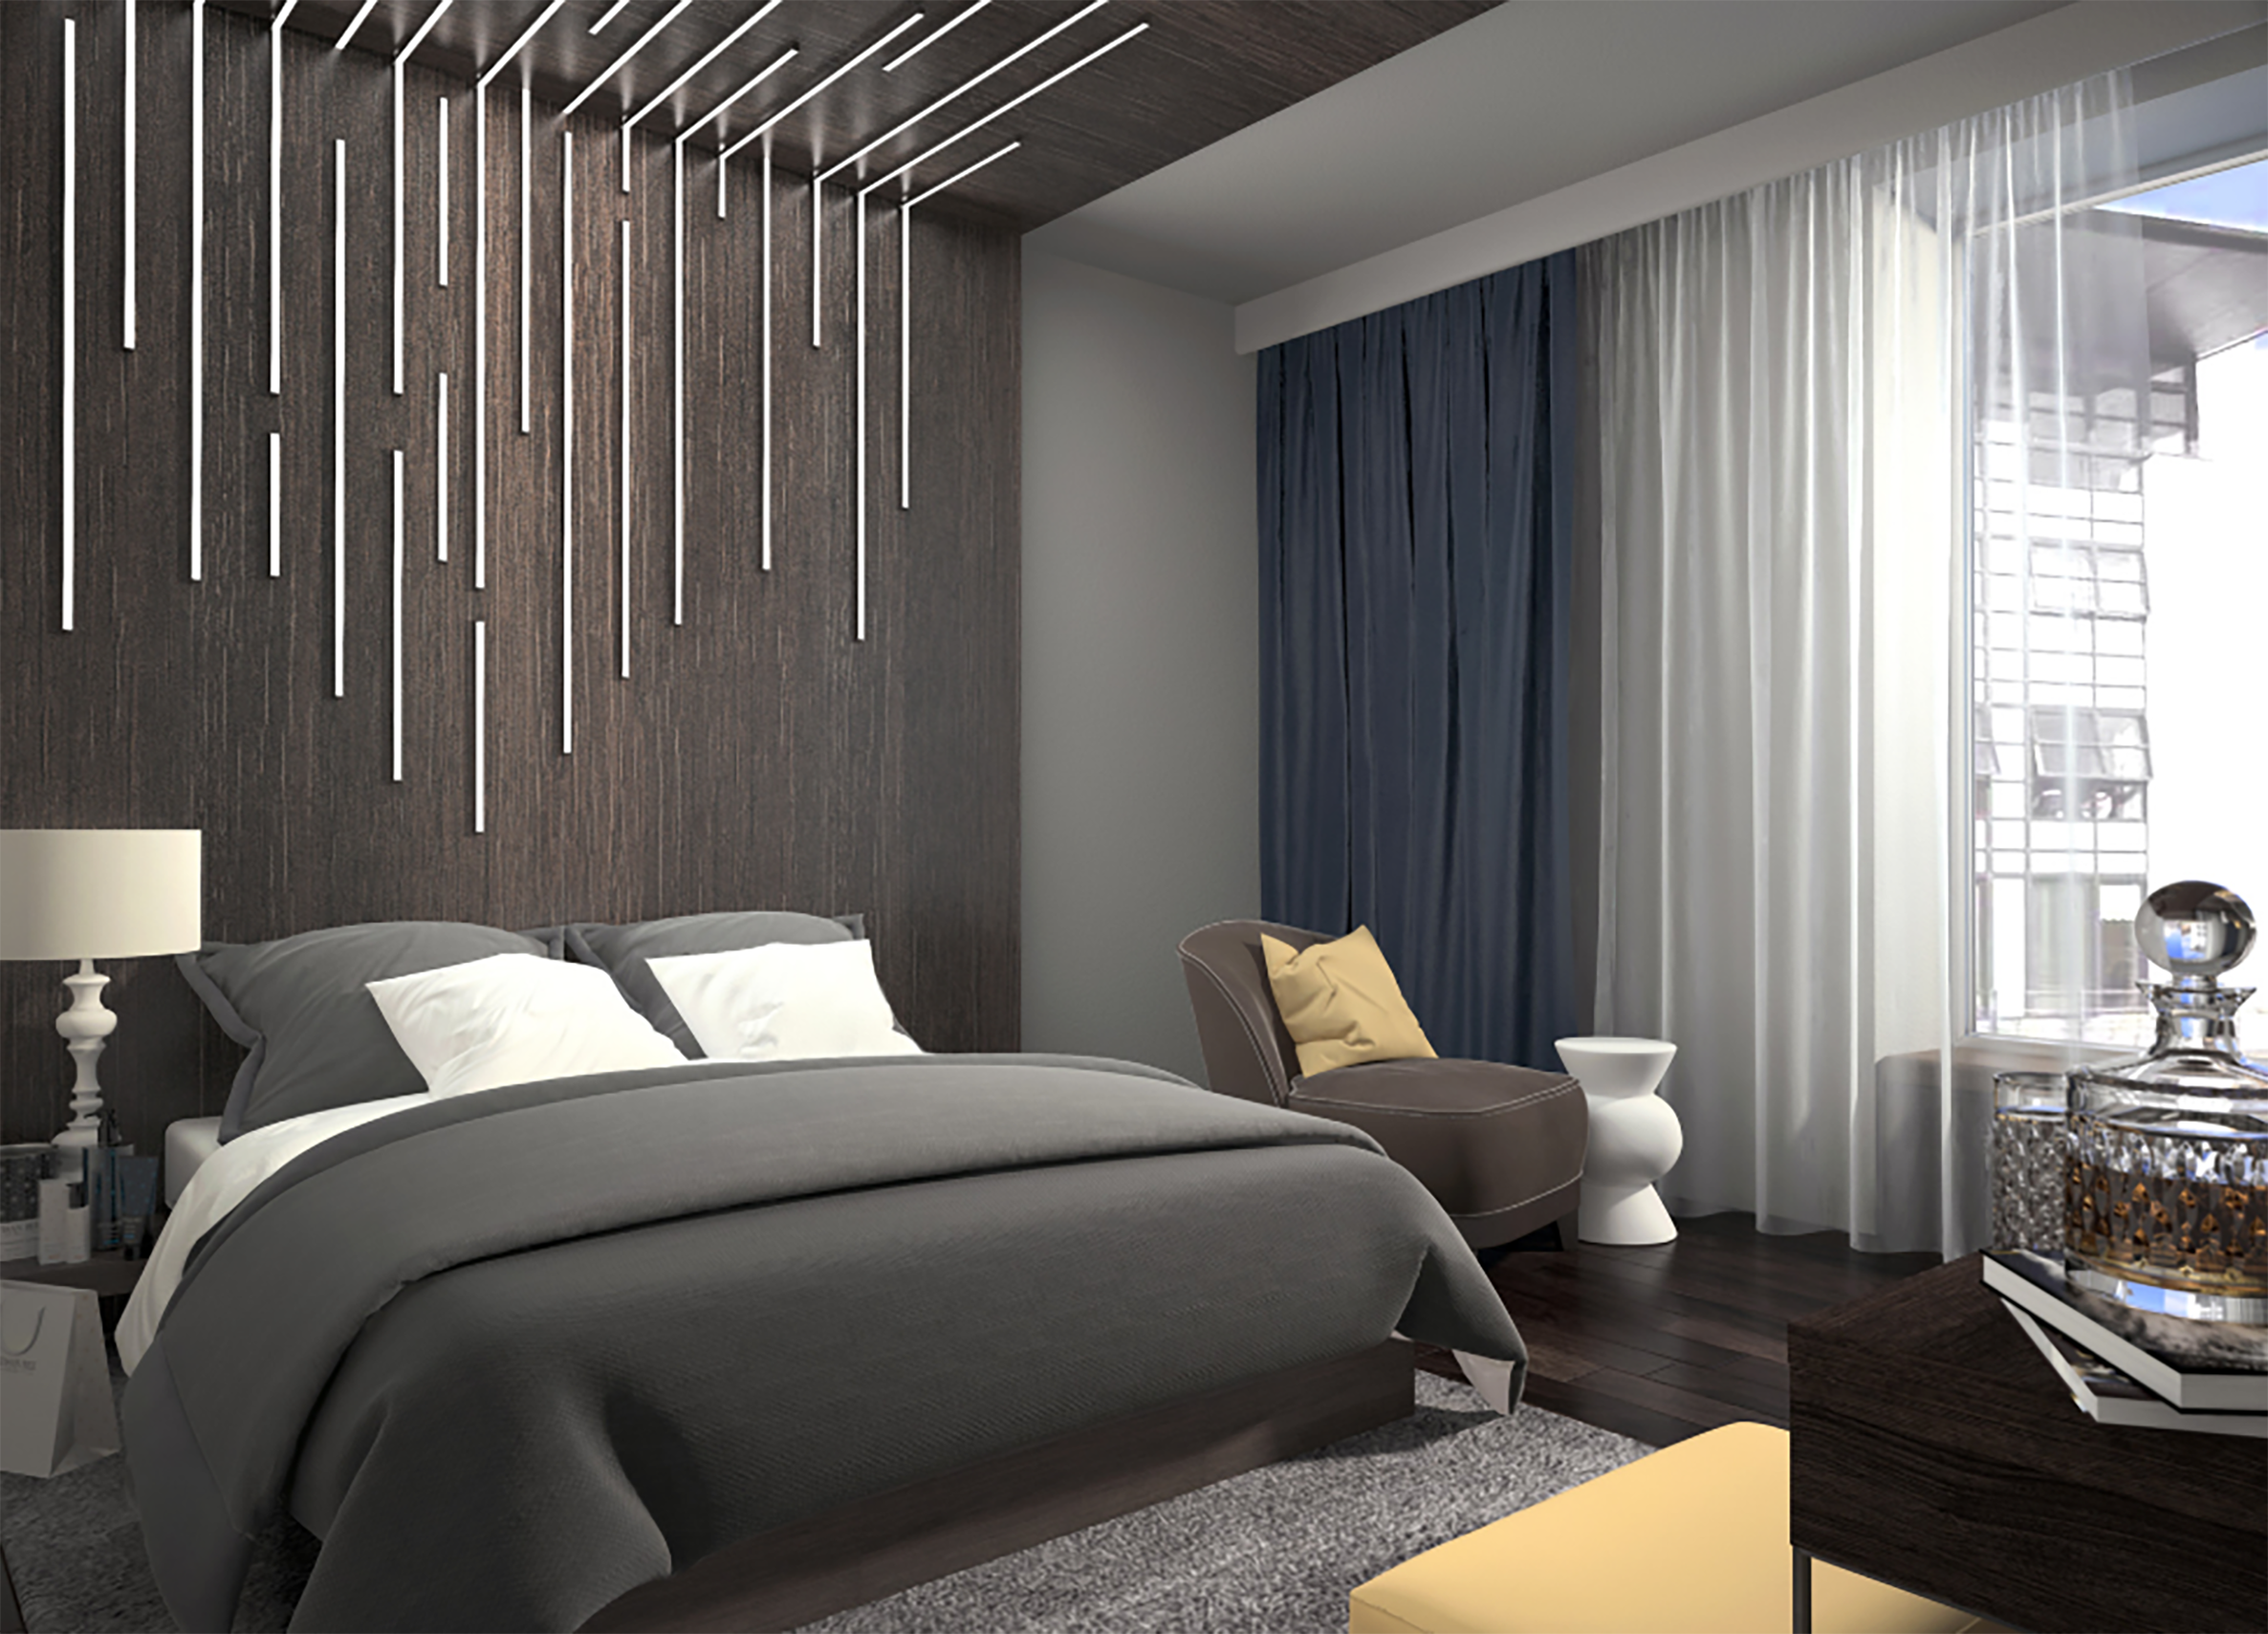 4 ways accent lighting can enhance your